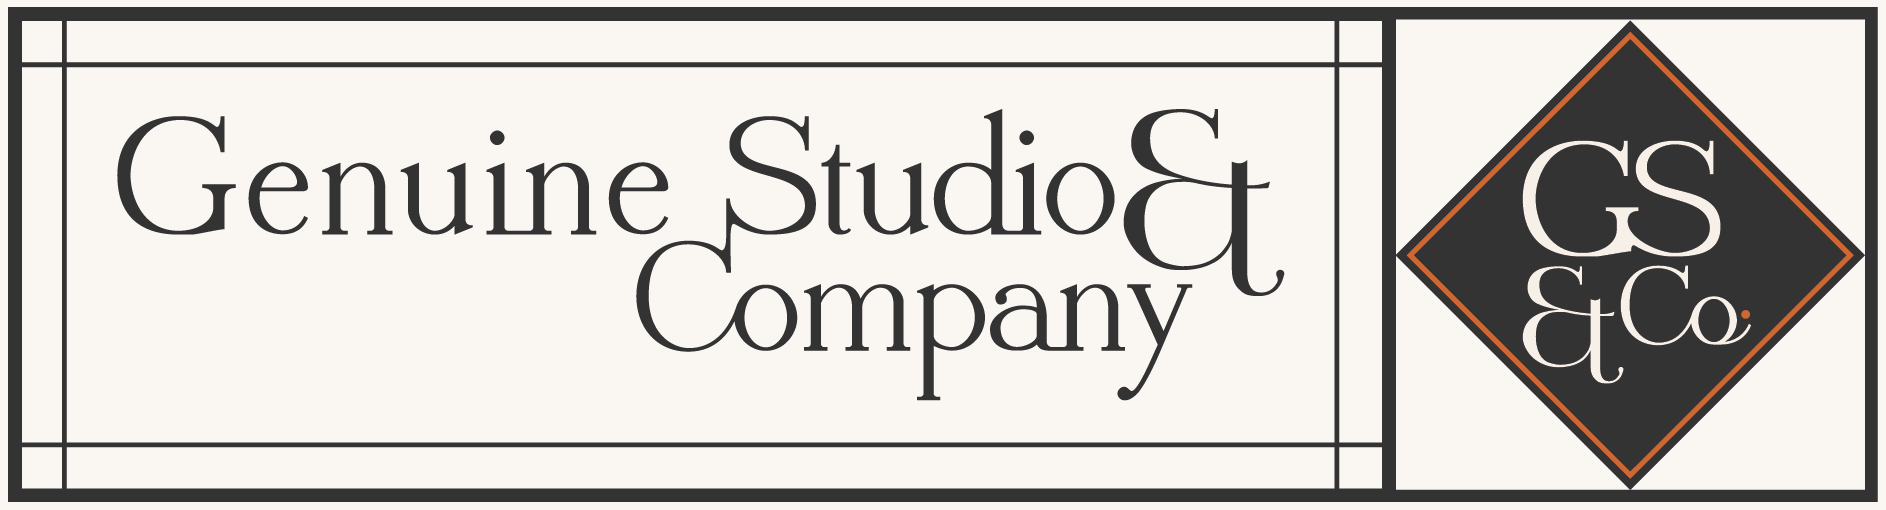 Genuine Studio & Co.